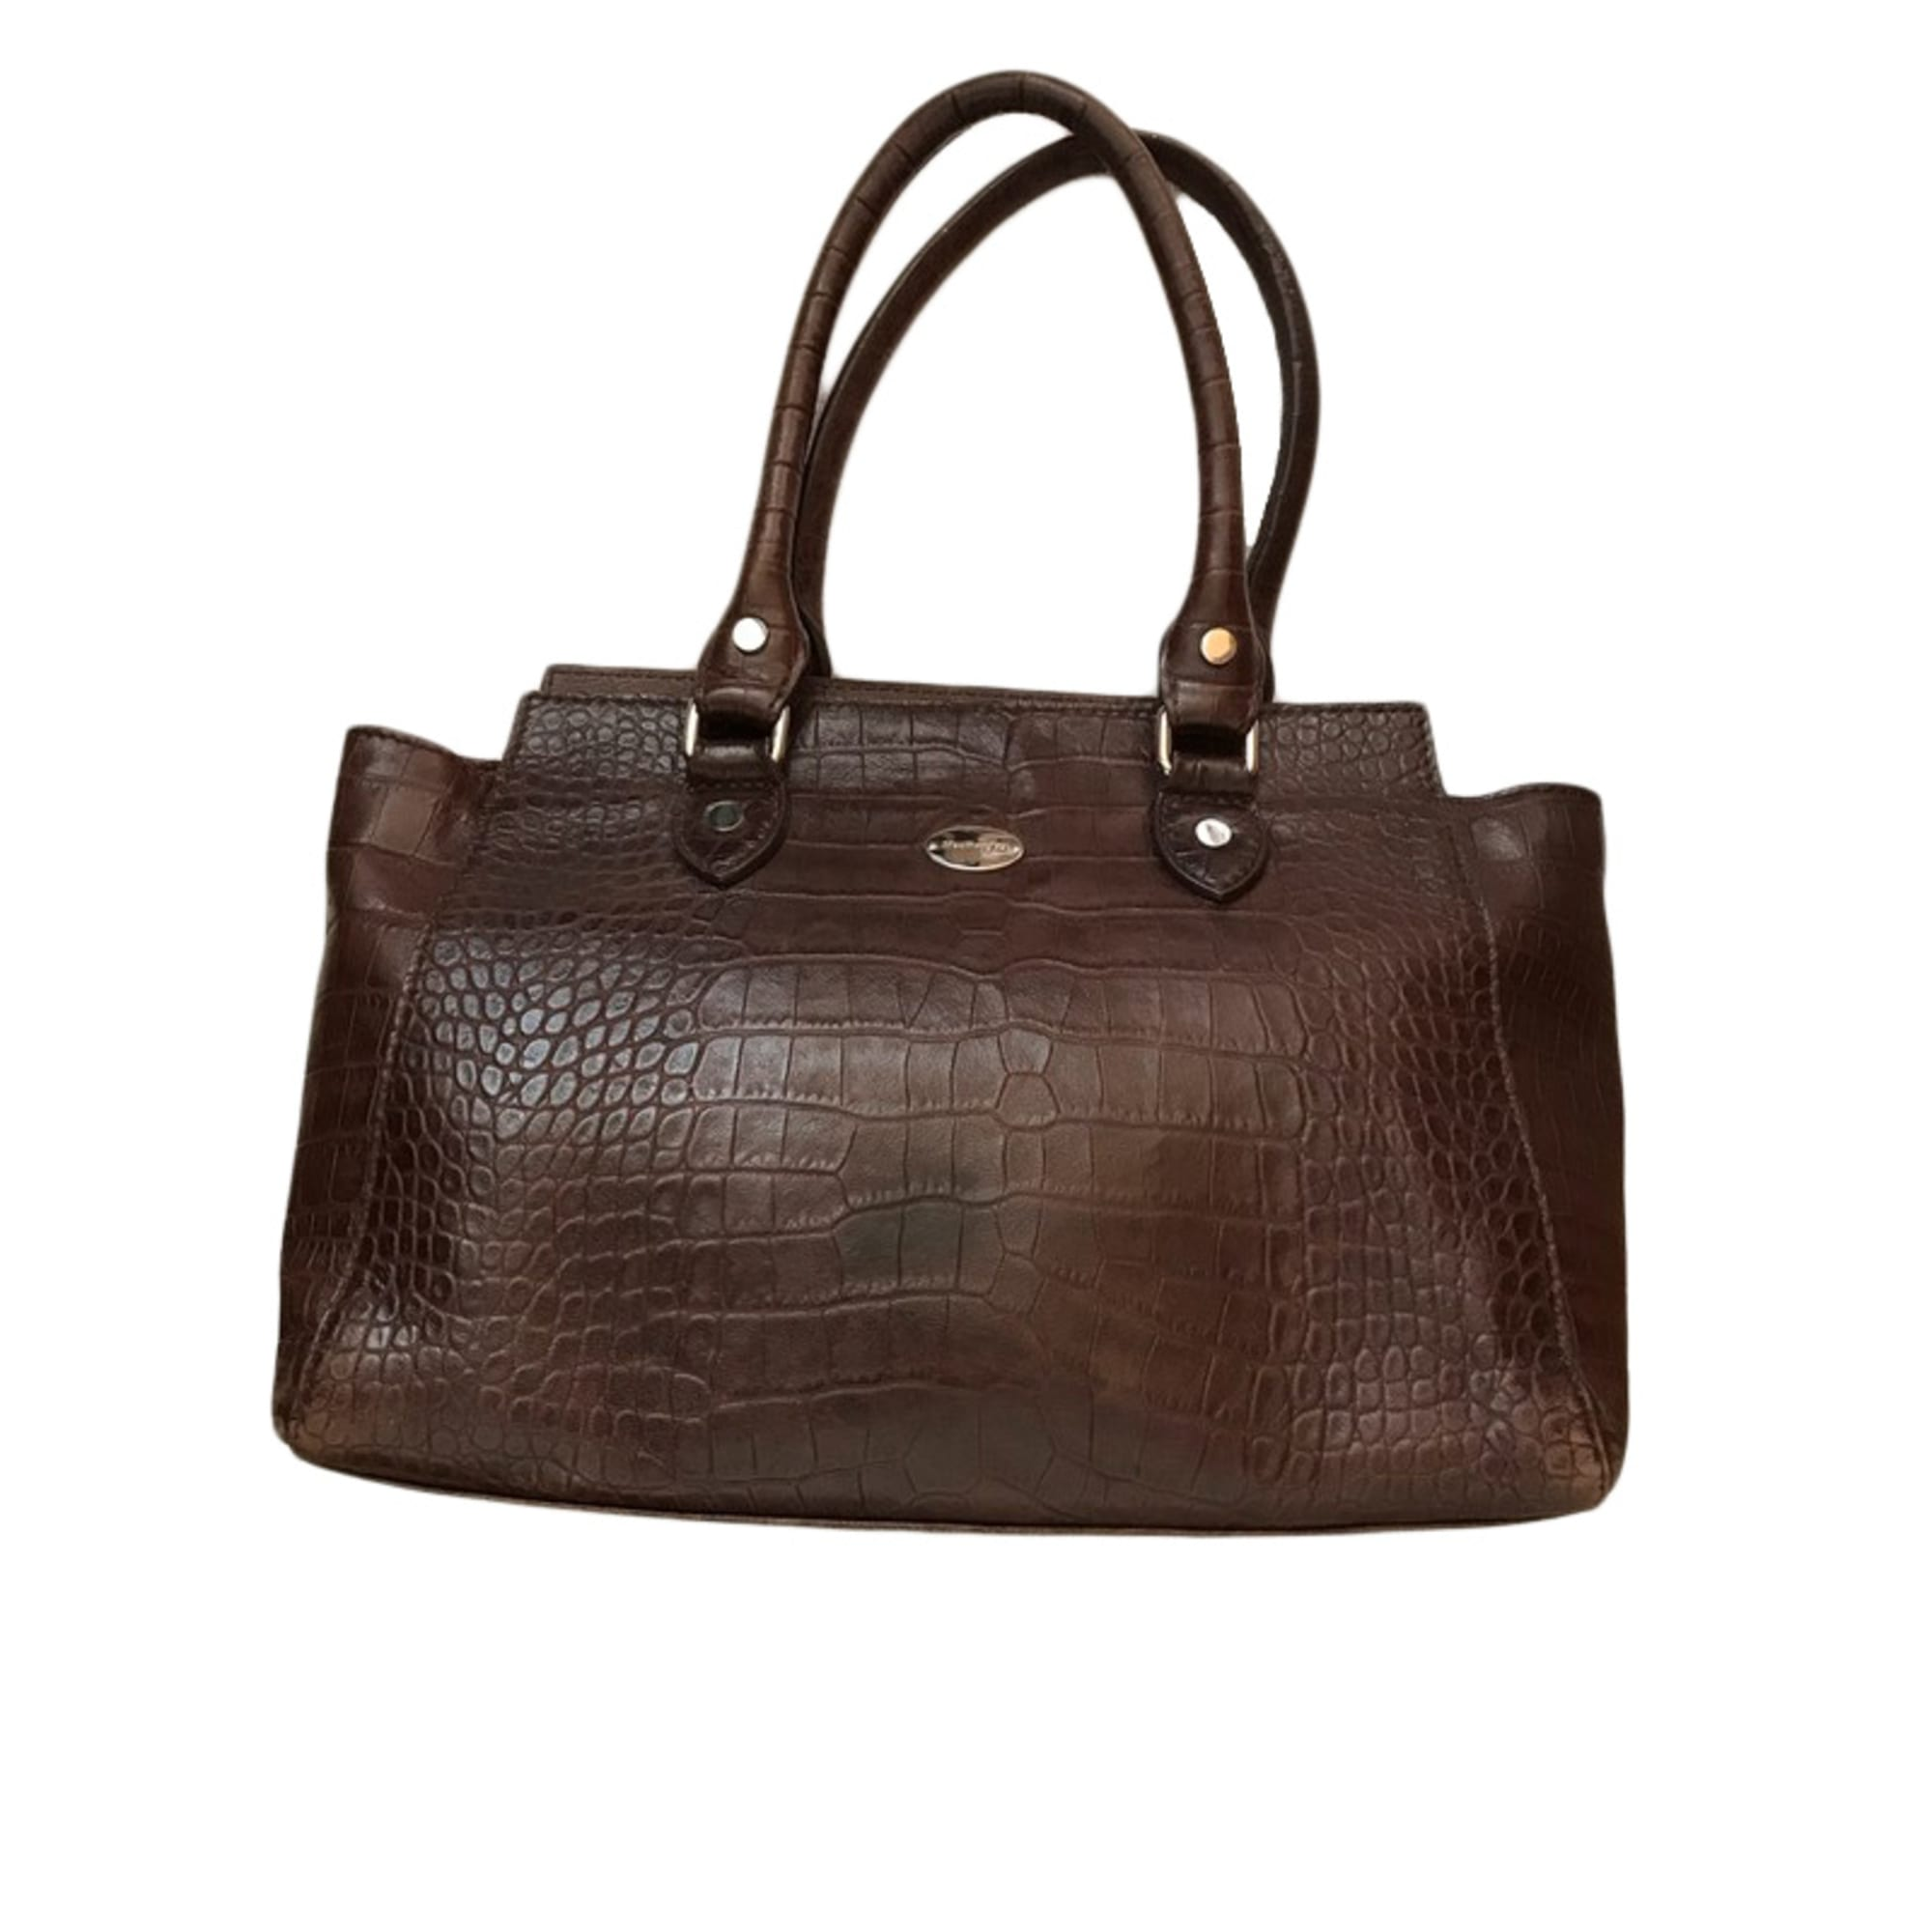 01bb9e5c75d Sac à main en cuir MAC DOUGLAS marron - 7815040